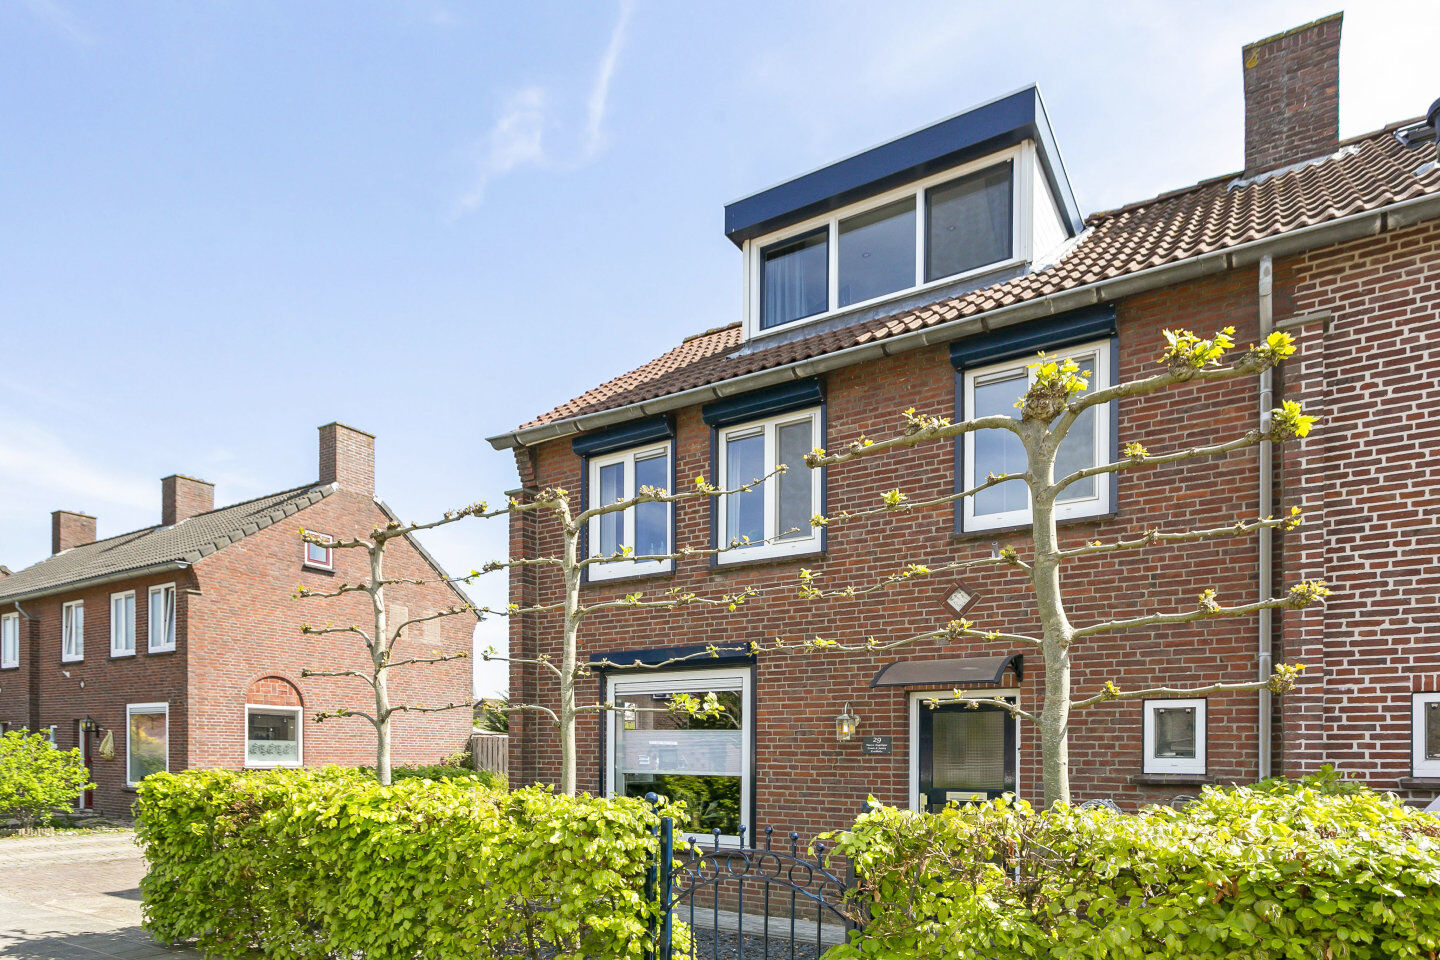 26583-philips_willemstraat_29-dinteloord-1951647238